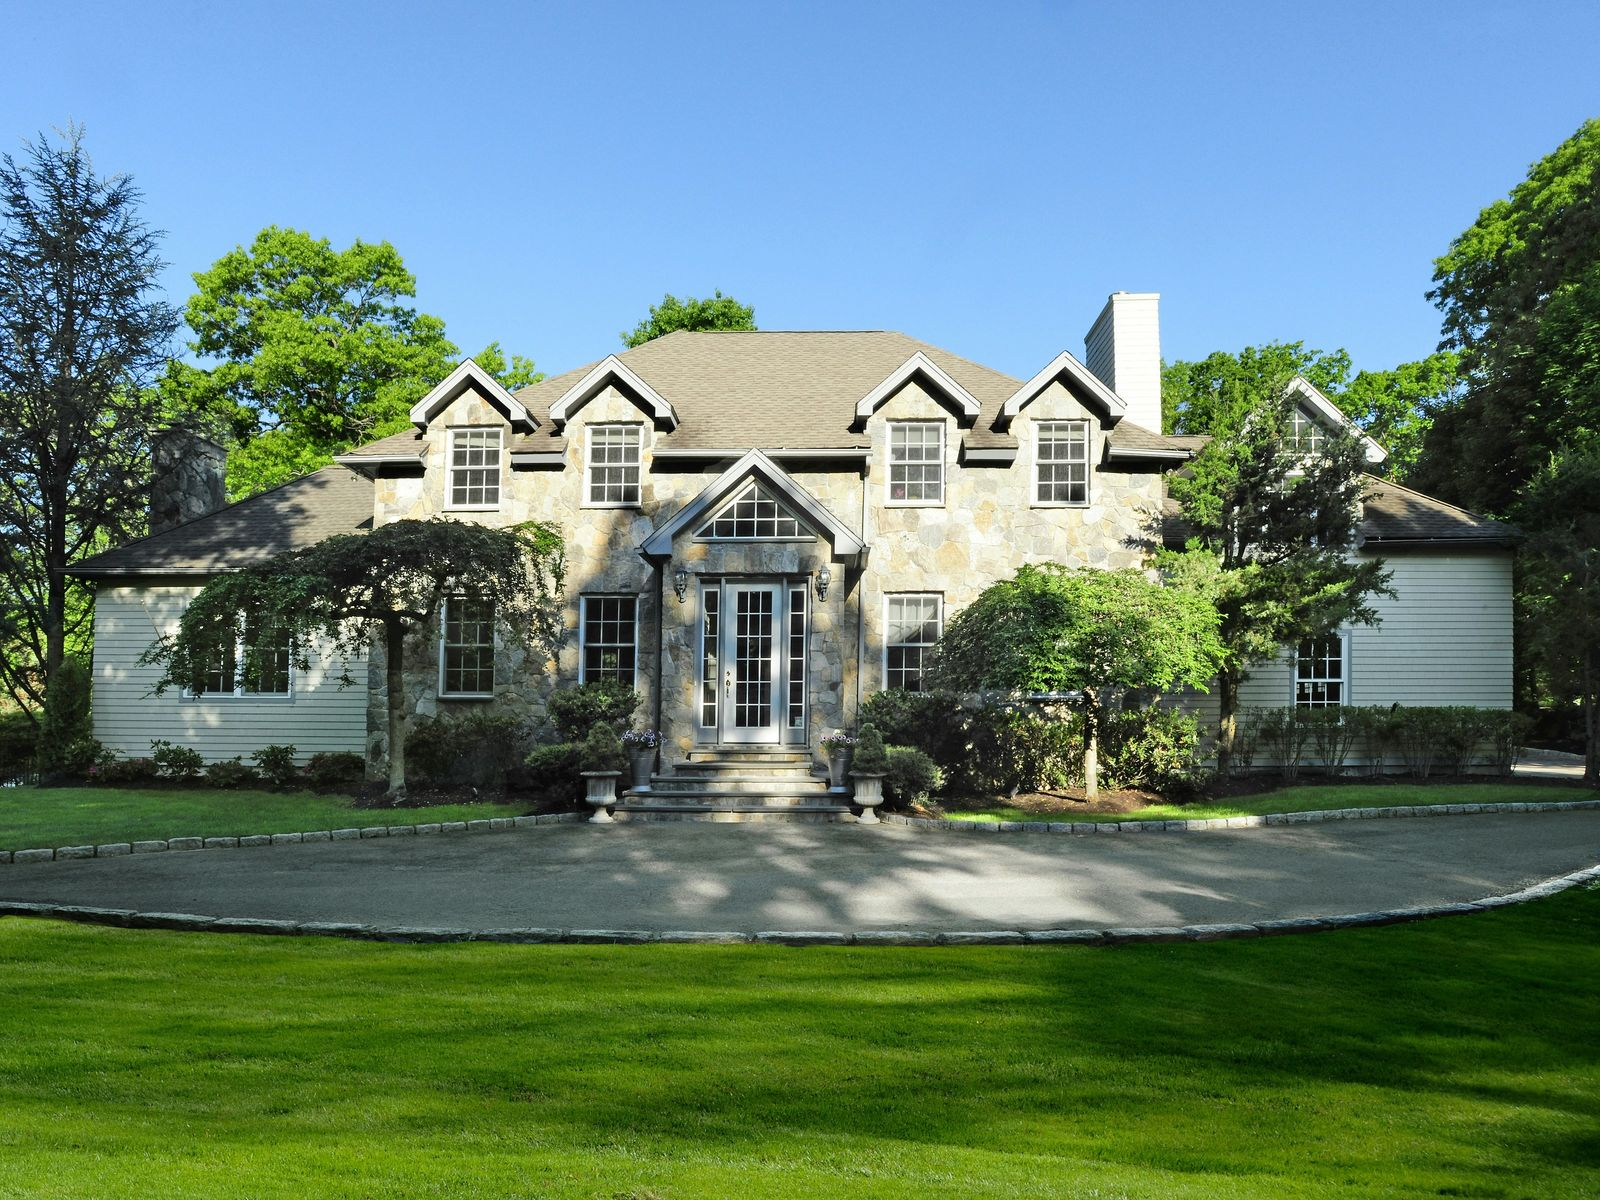 Secluded Country Compound, Cos Cob CT Single Family Home - Greenwich Real Estate